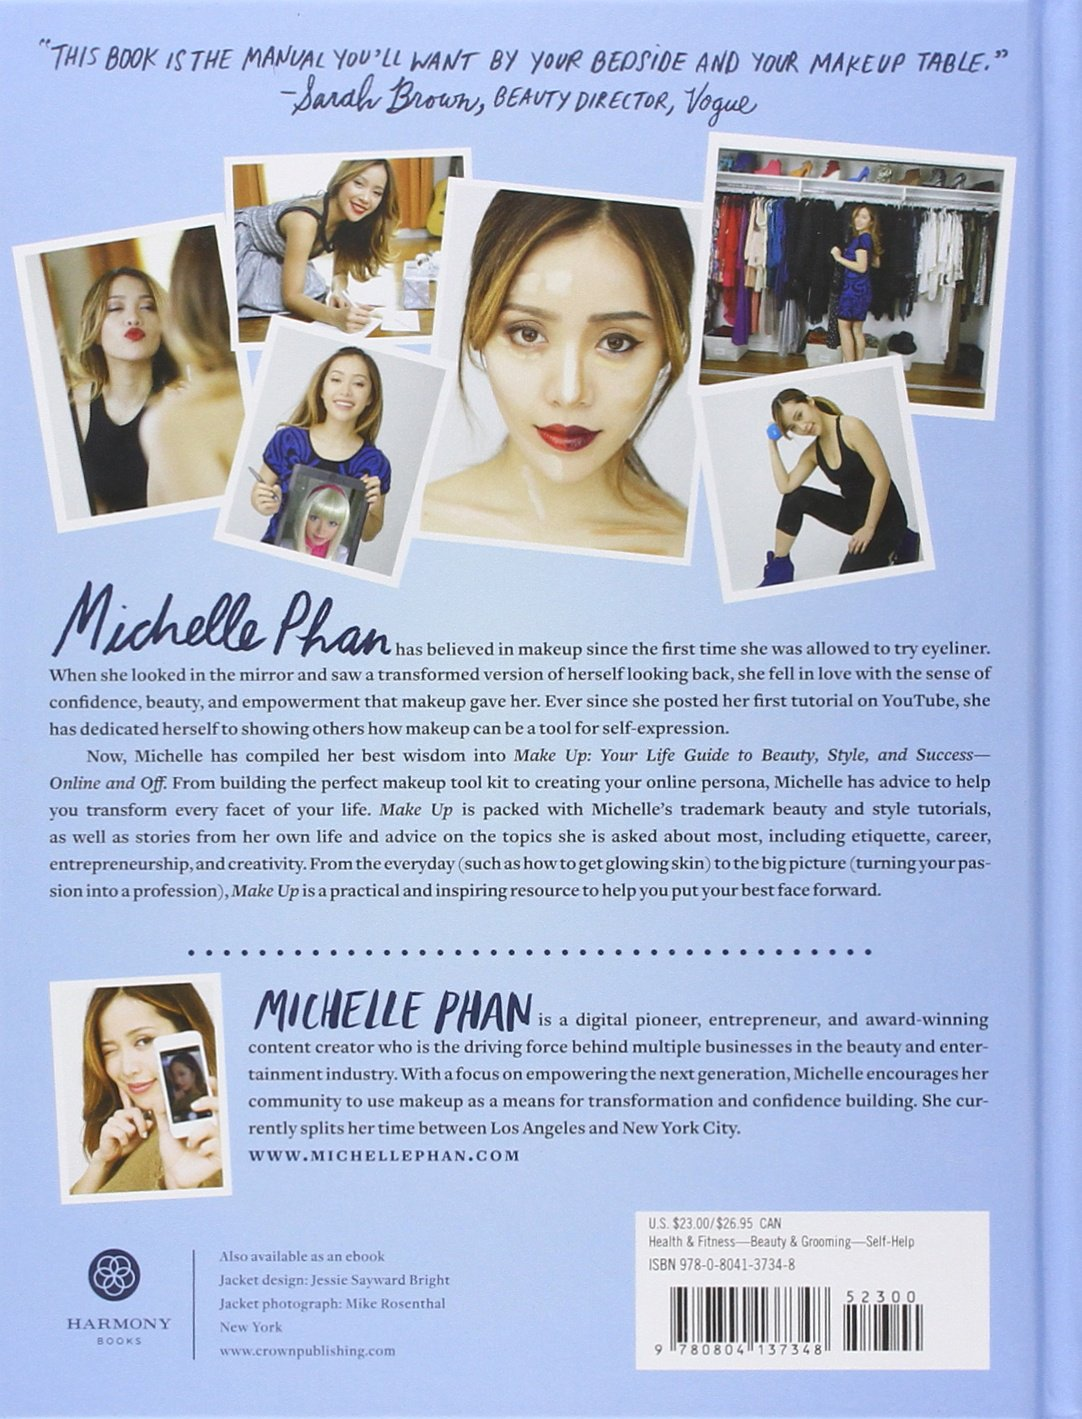 Make Up: Your Life Guide to Beauty, Style, and Success--Online and Off: Michelle Phan: 8601410717599: Amazon.com: Books